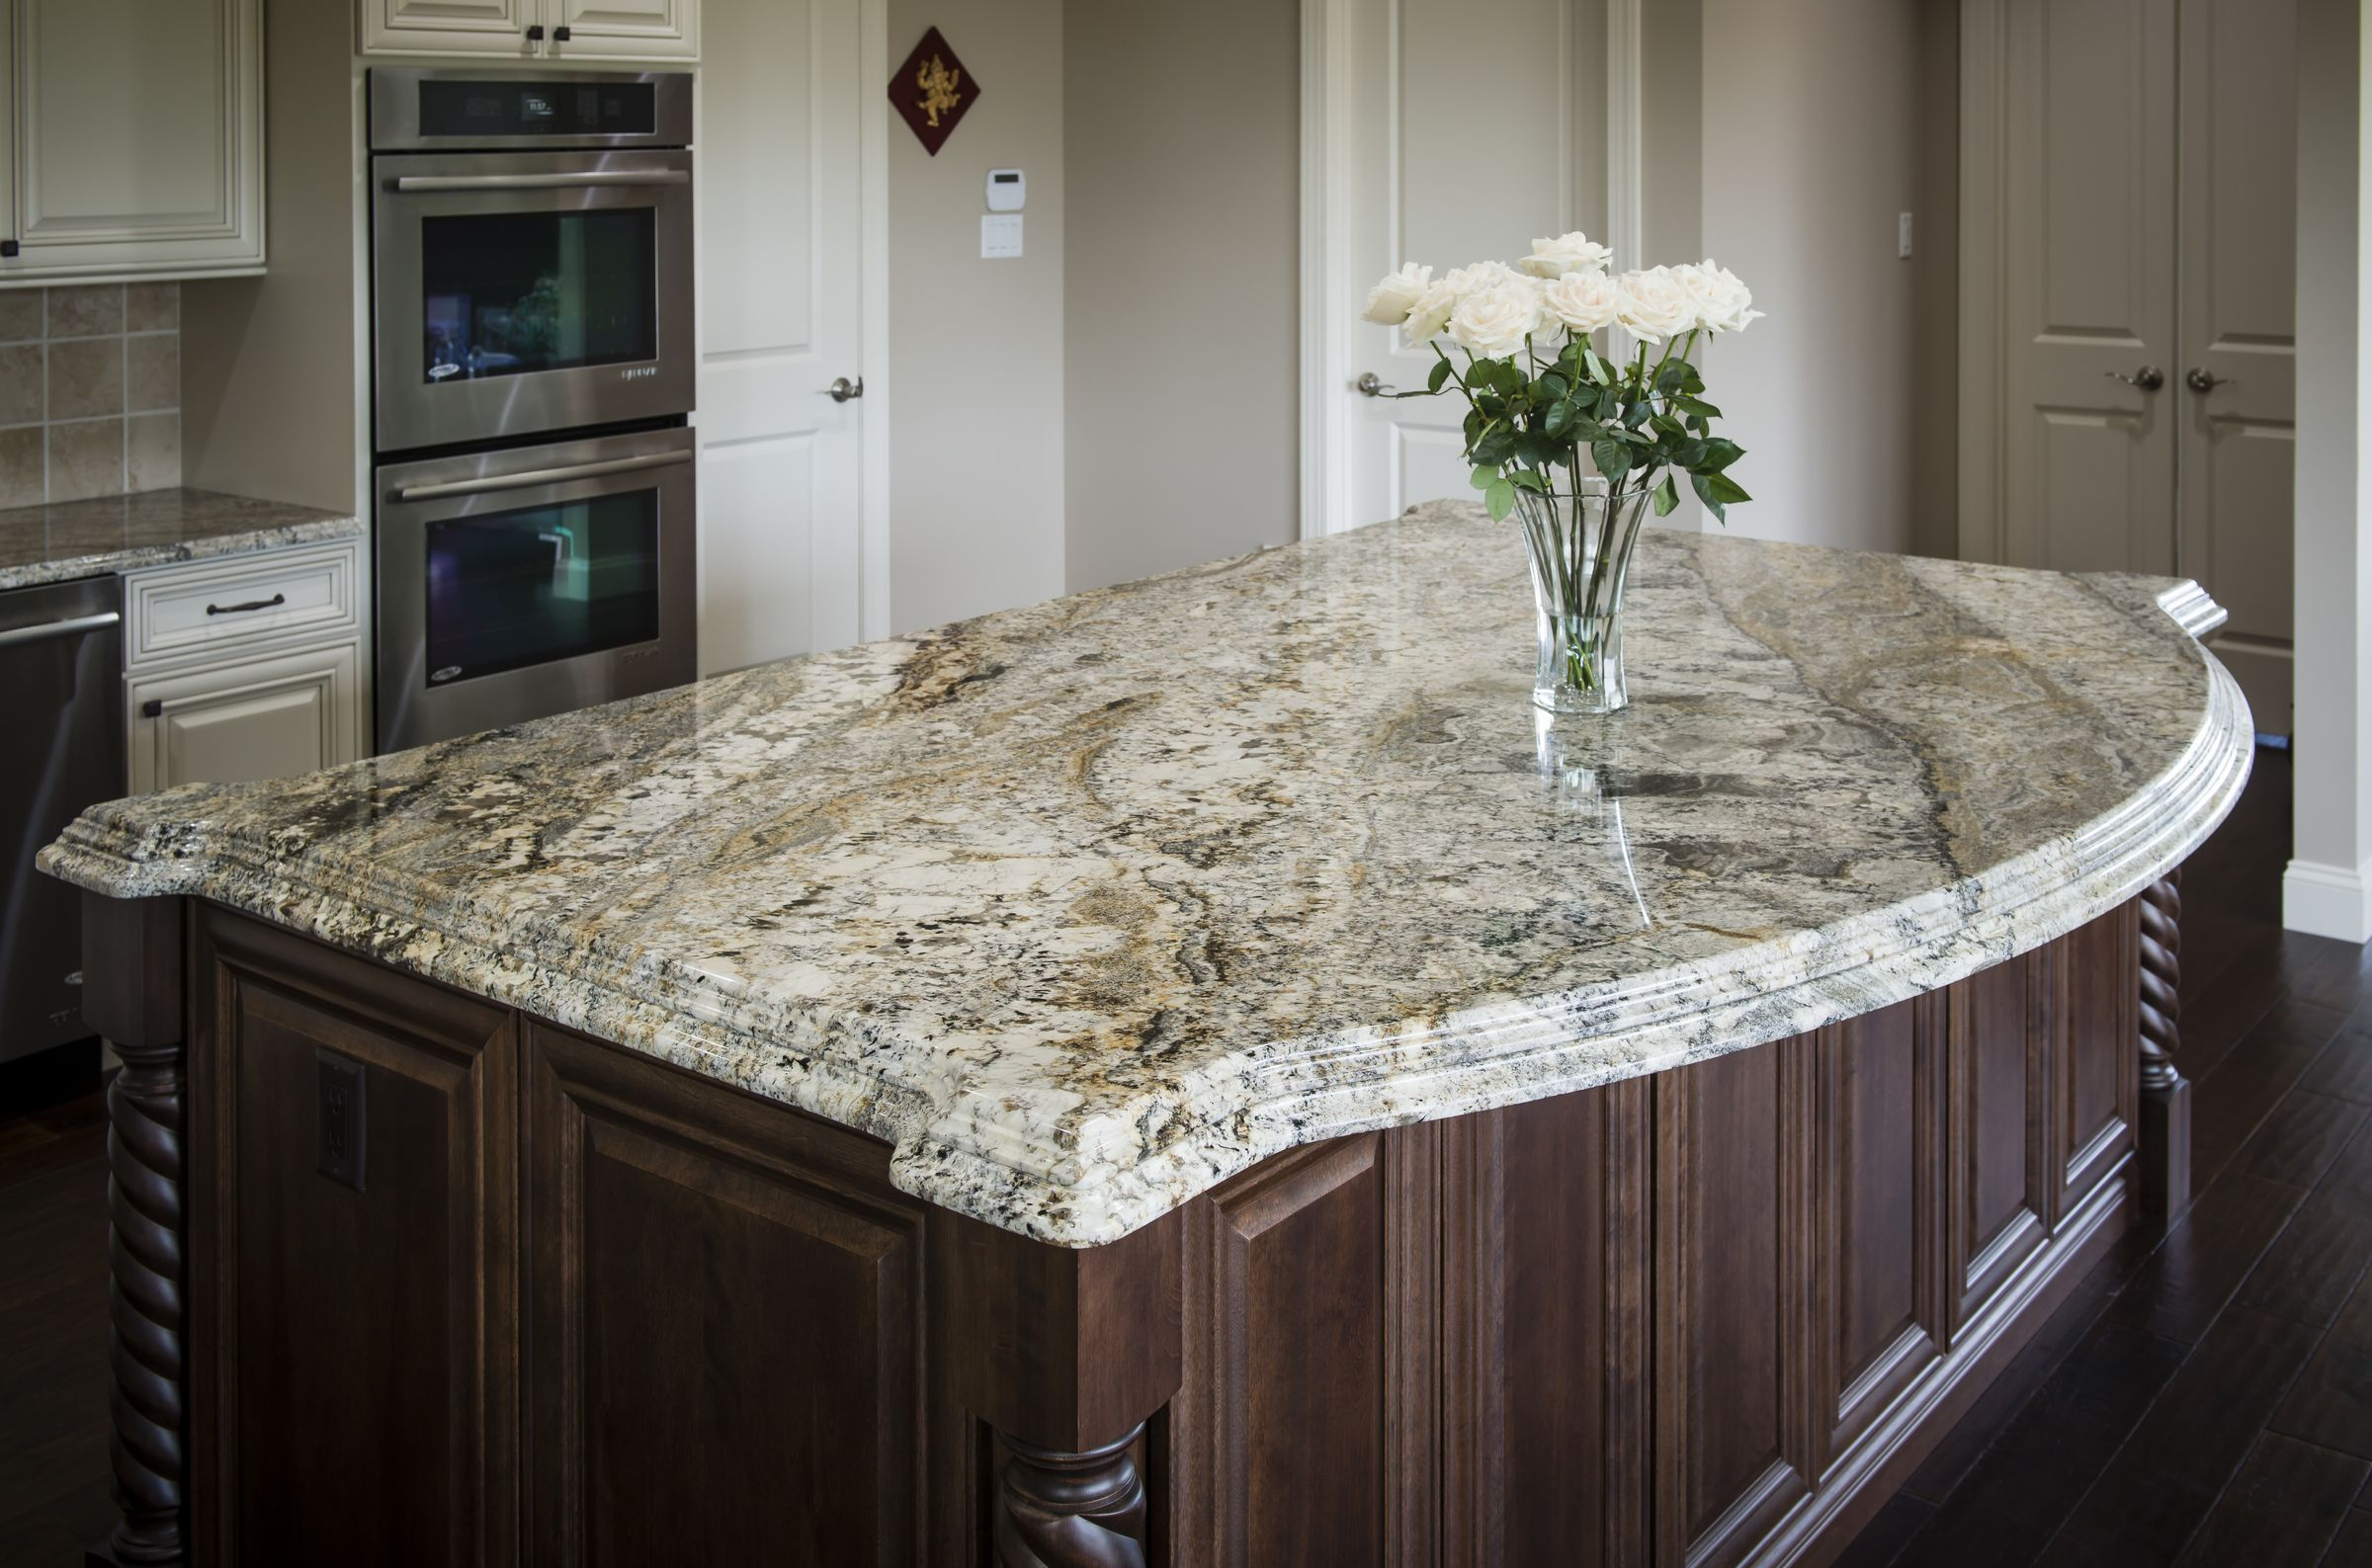 why choose tops countertops countertop granite vanity for counter mn a and on bathroom impressive